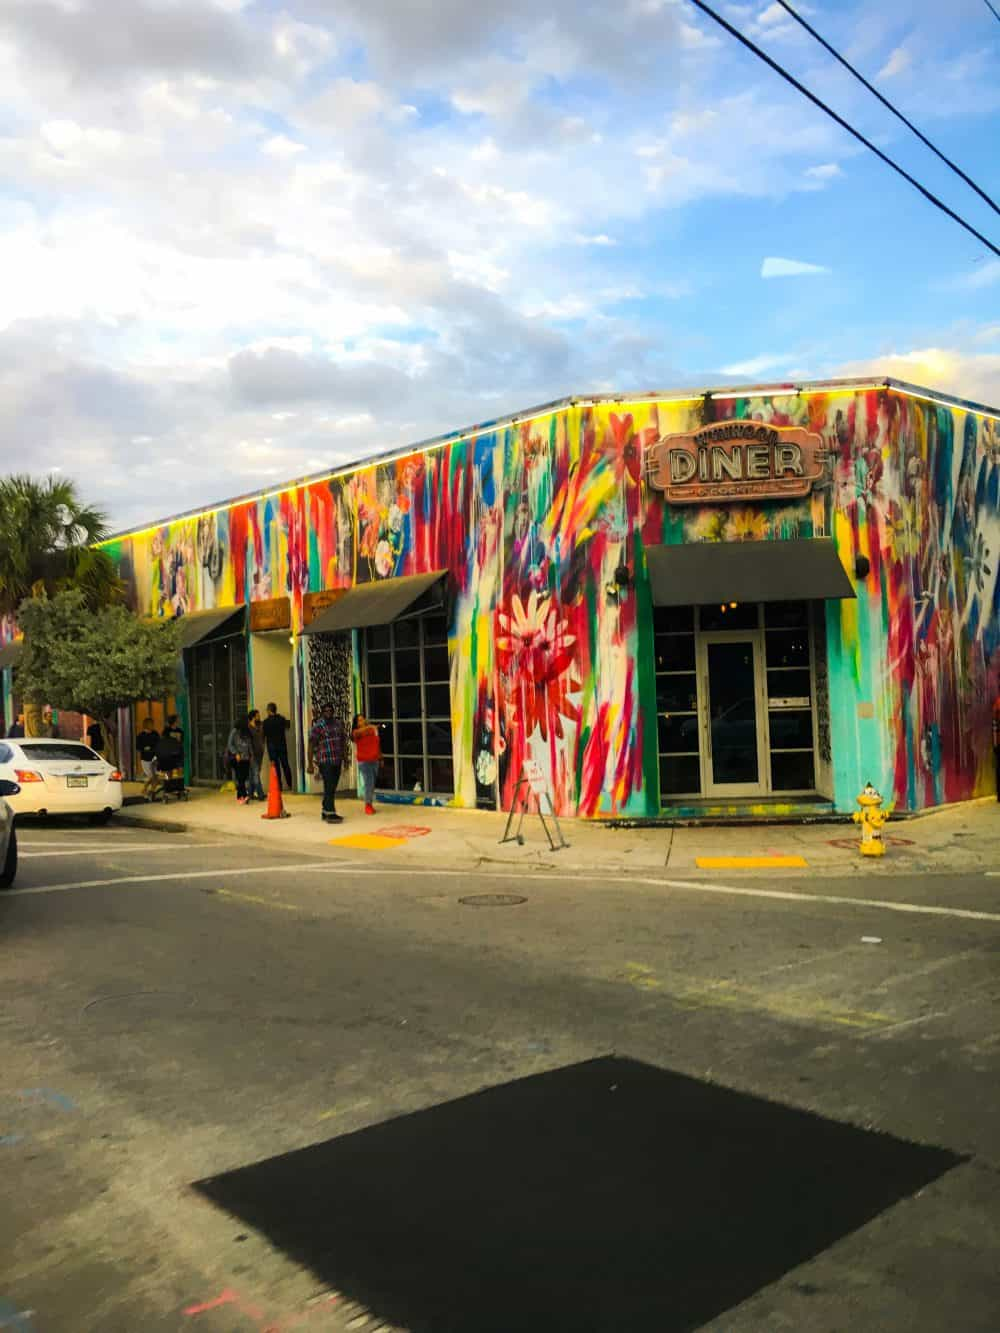 Colourful streets in Wynwood, Miami